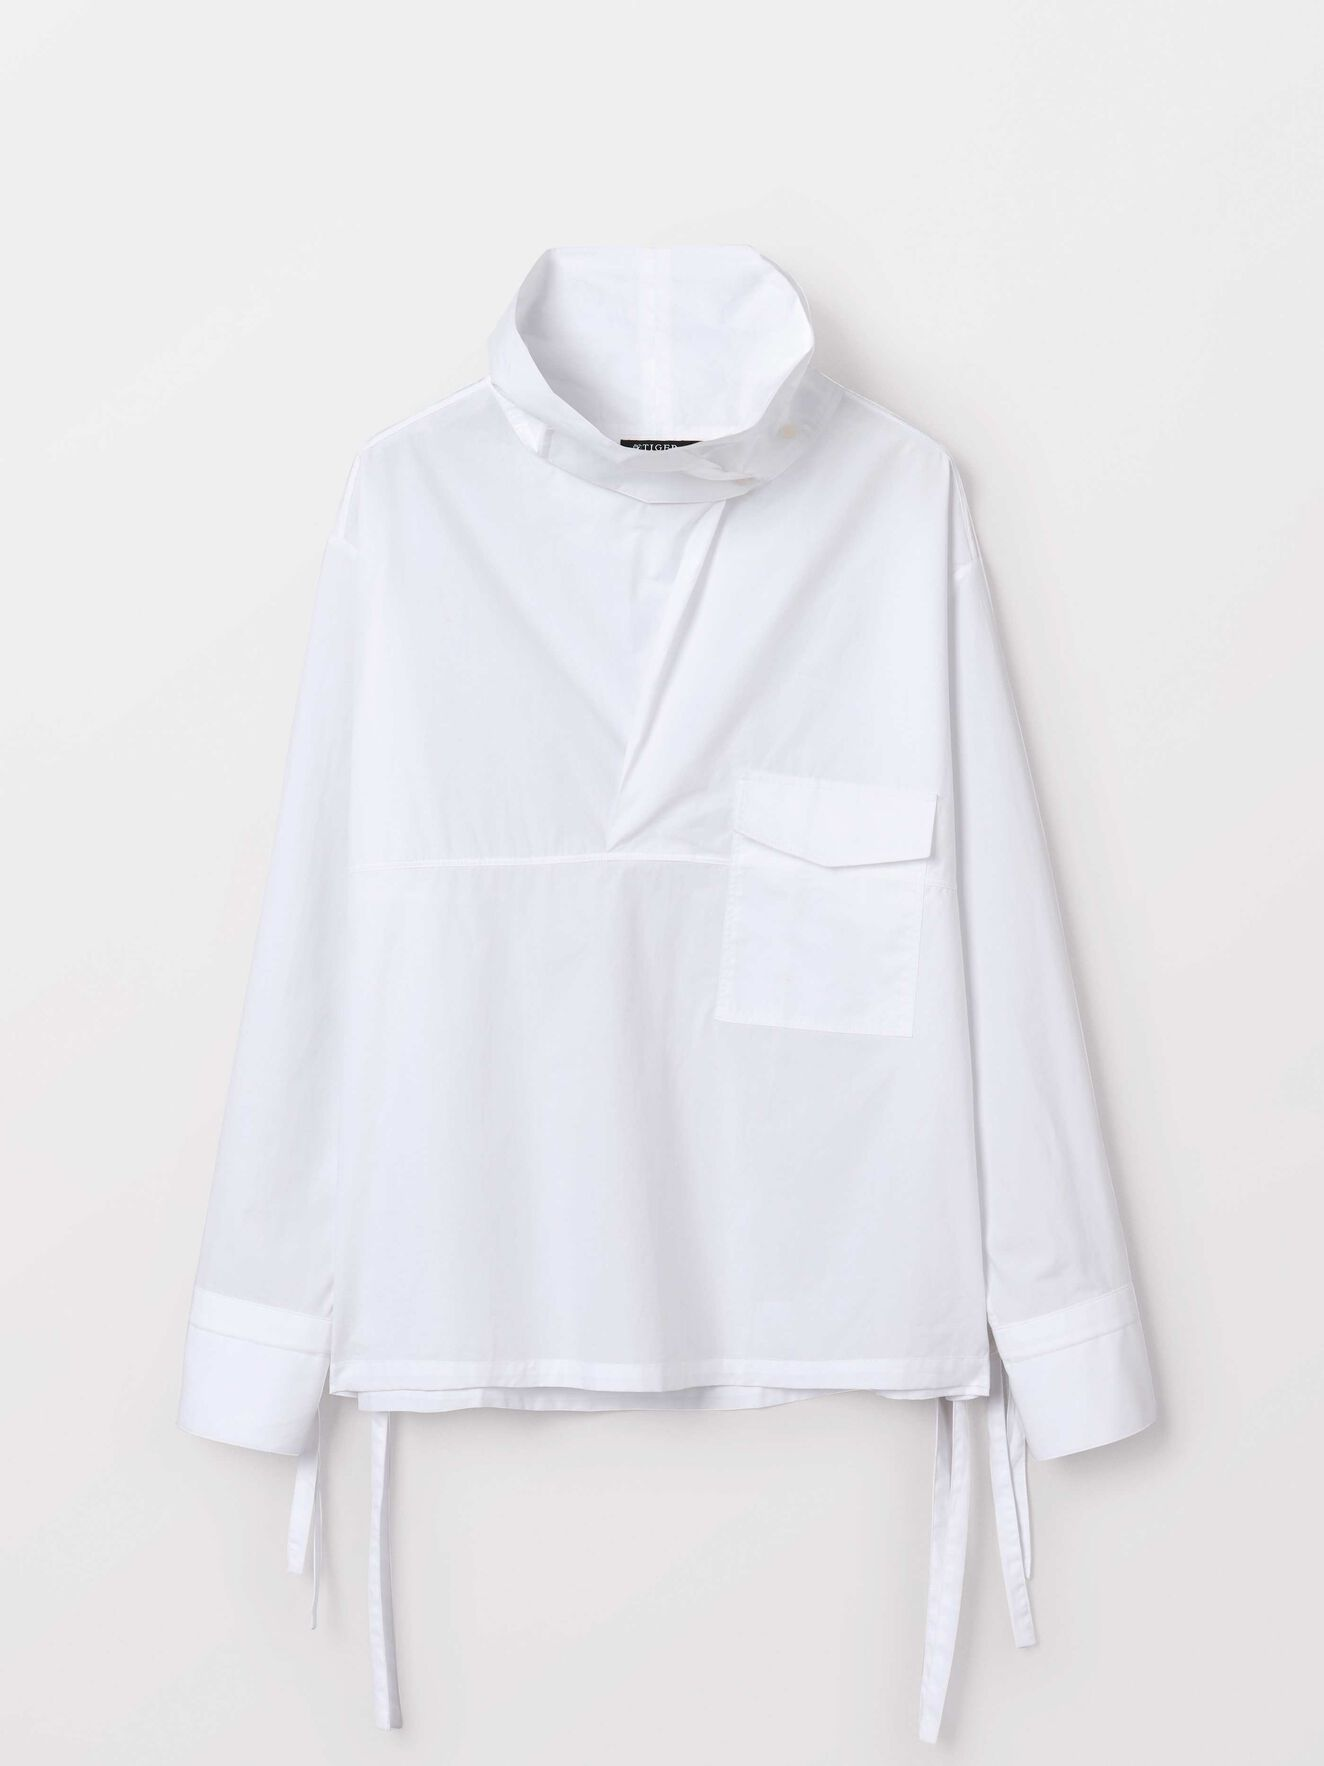 Karpell shirt  in Bright White from Tiger of Sweden